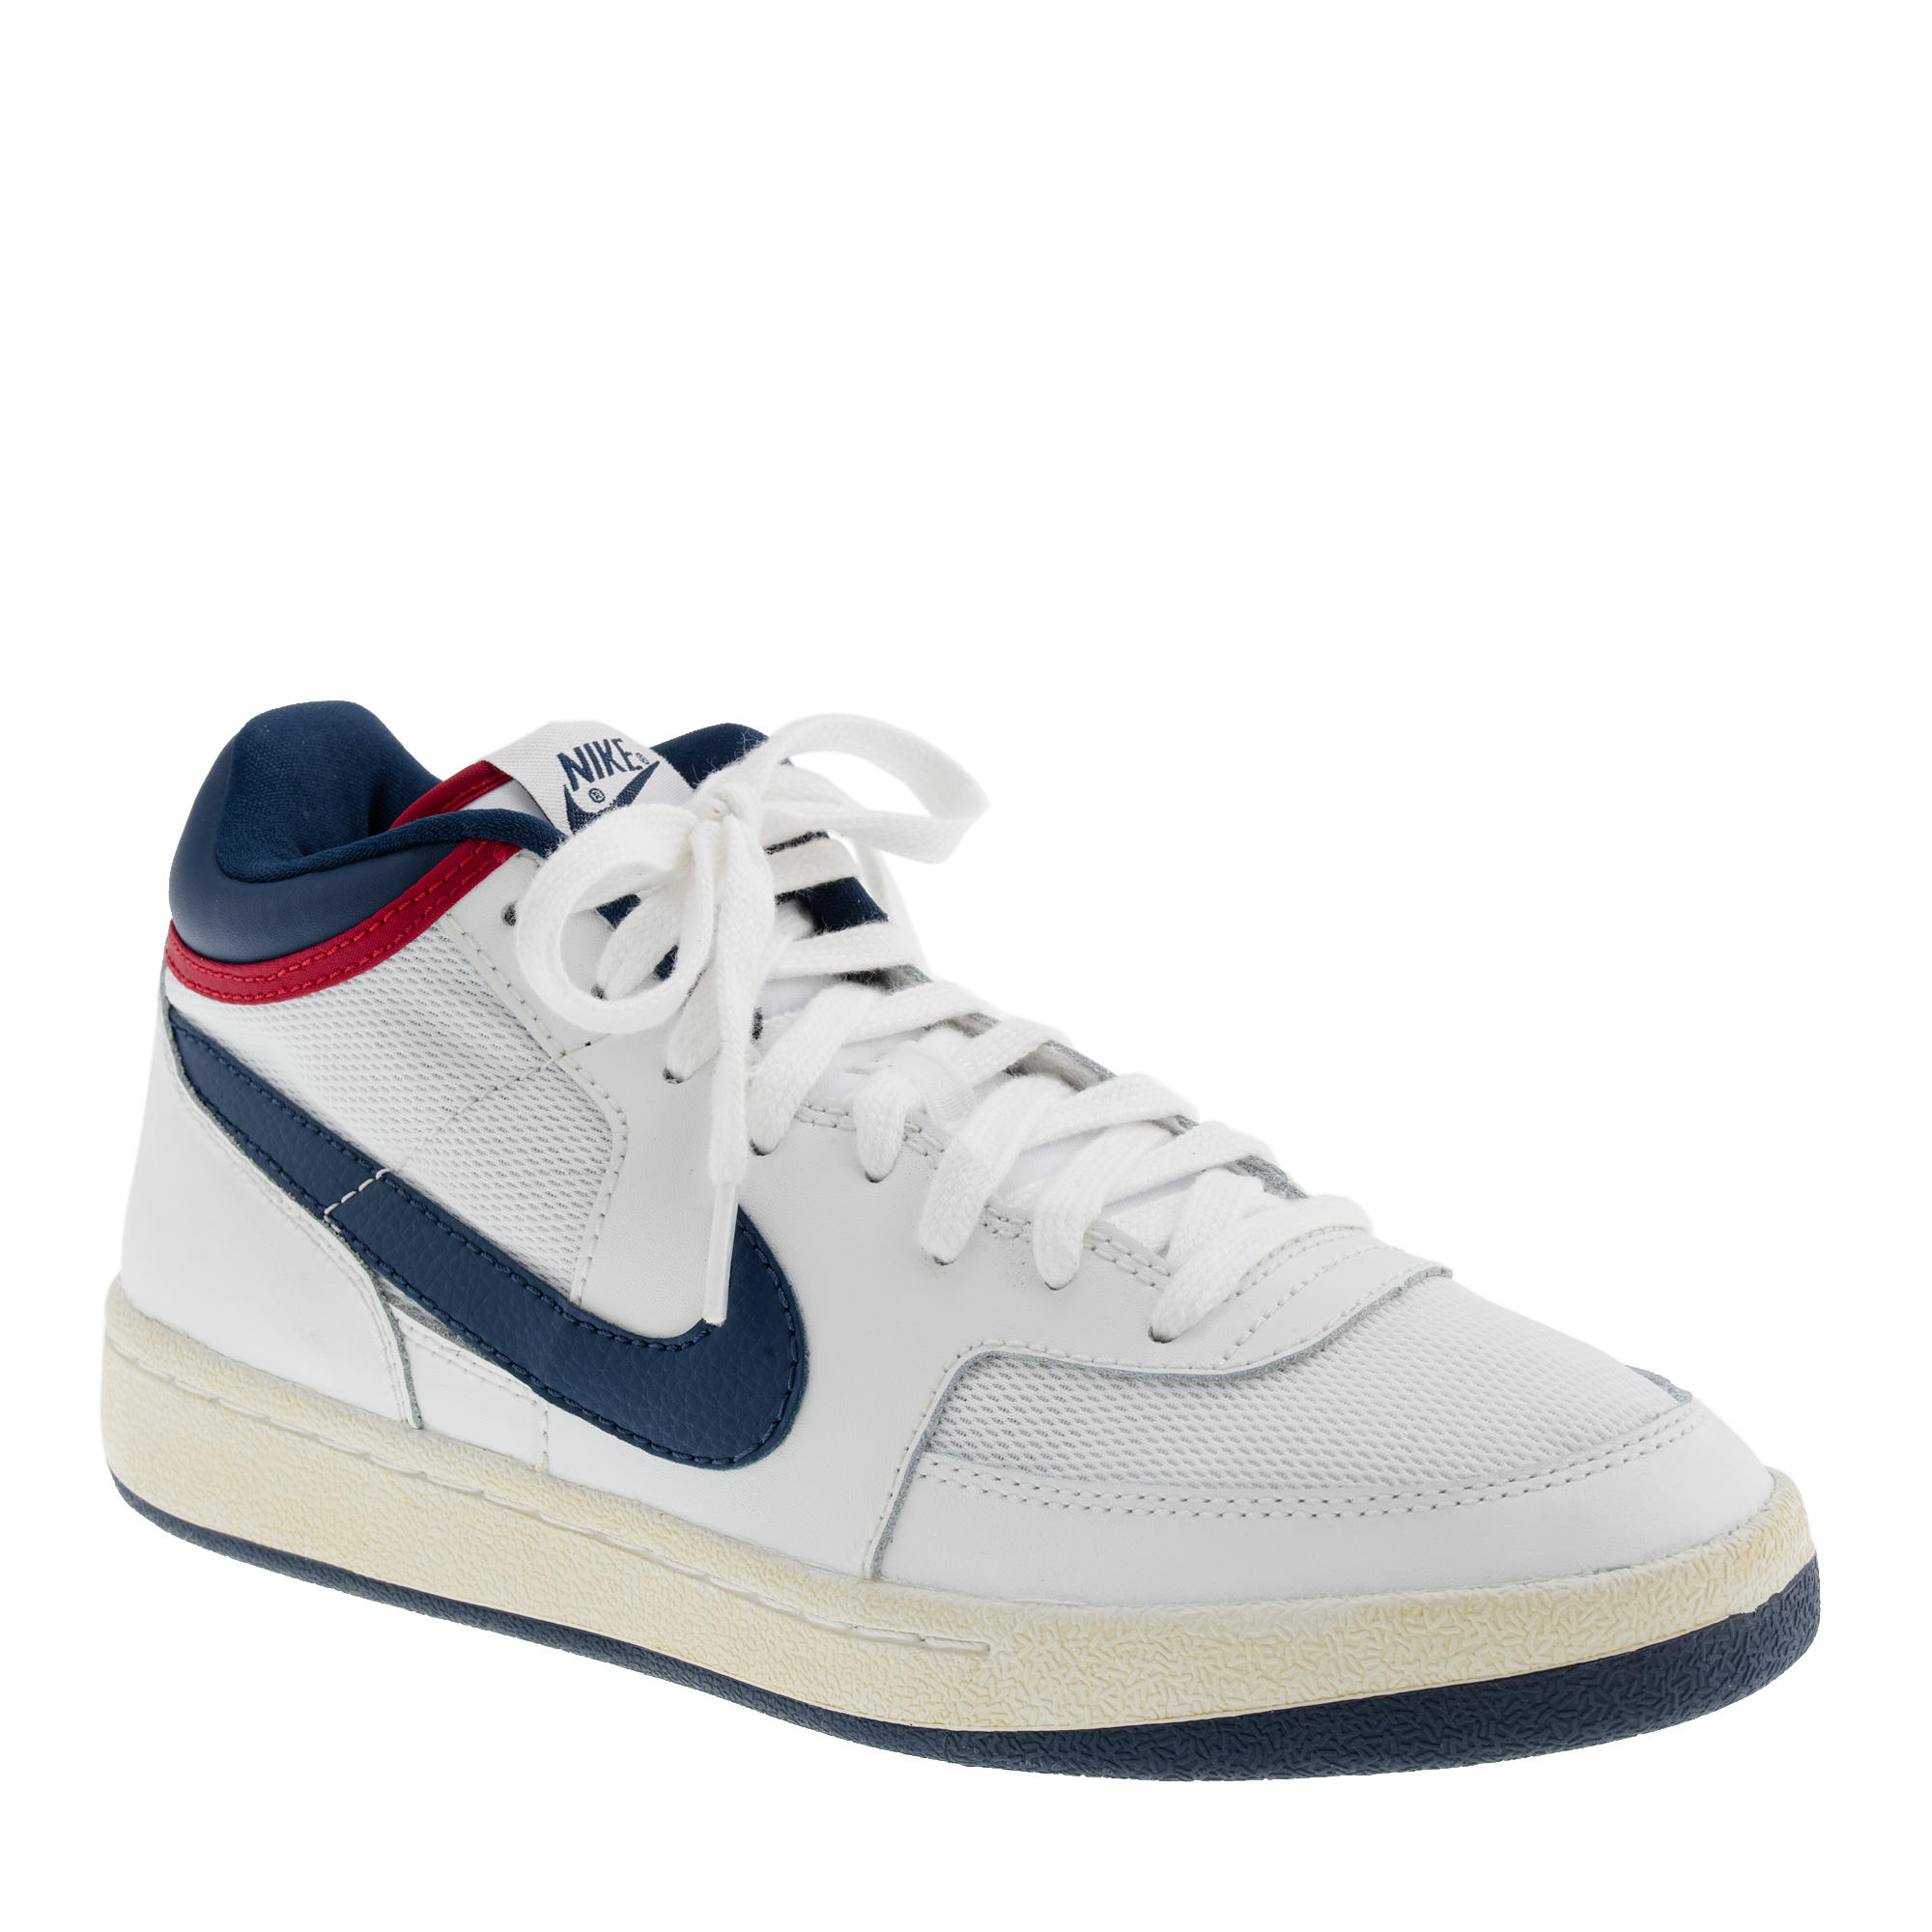 nike 174 for j crew vintage collection challenge court